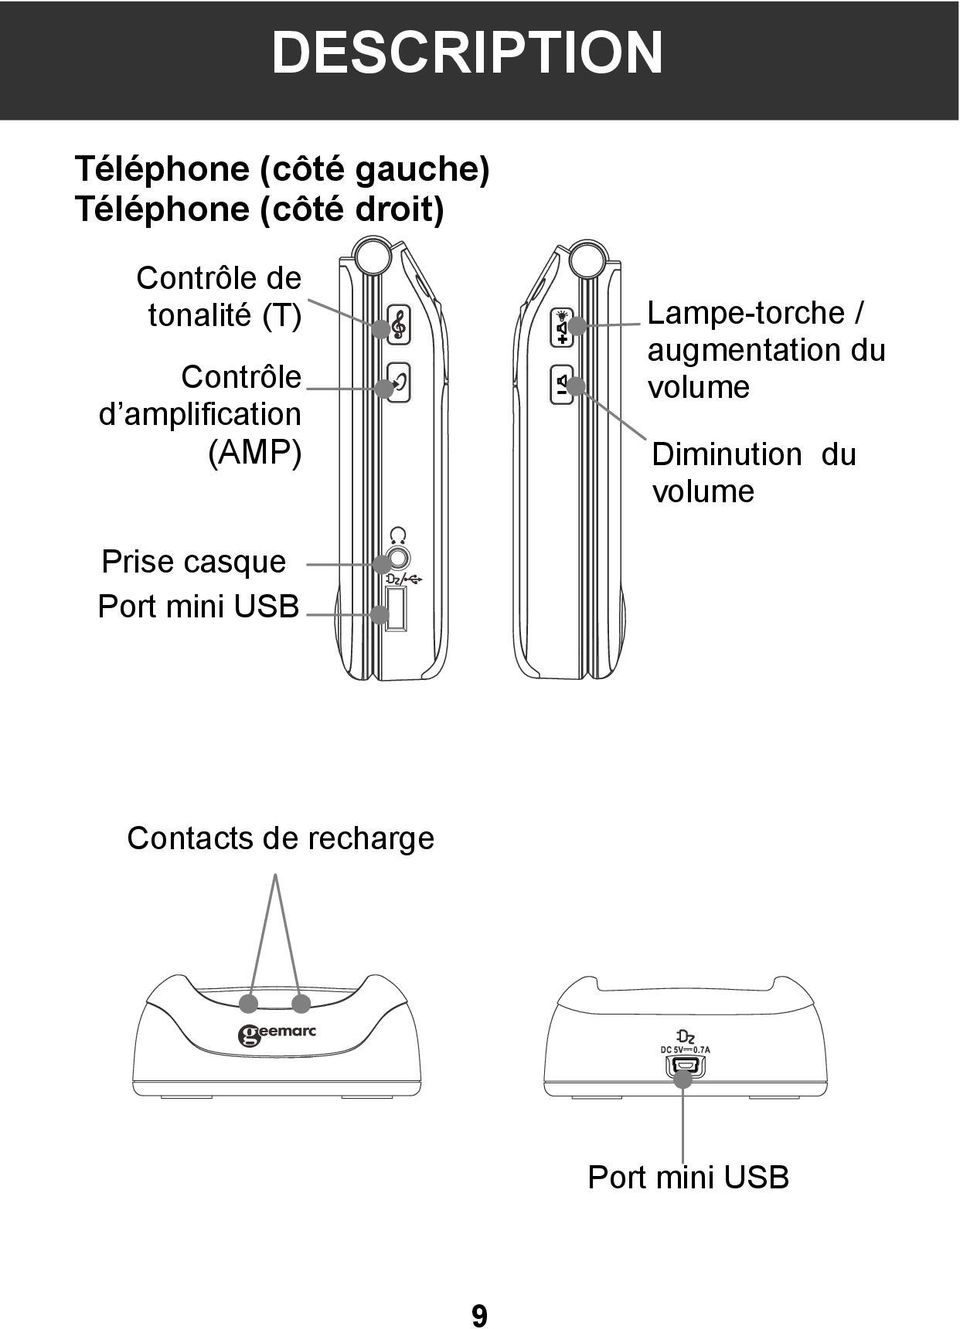 Lampe-torche / augmentation du volume Diminution du volume